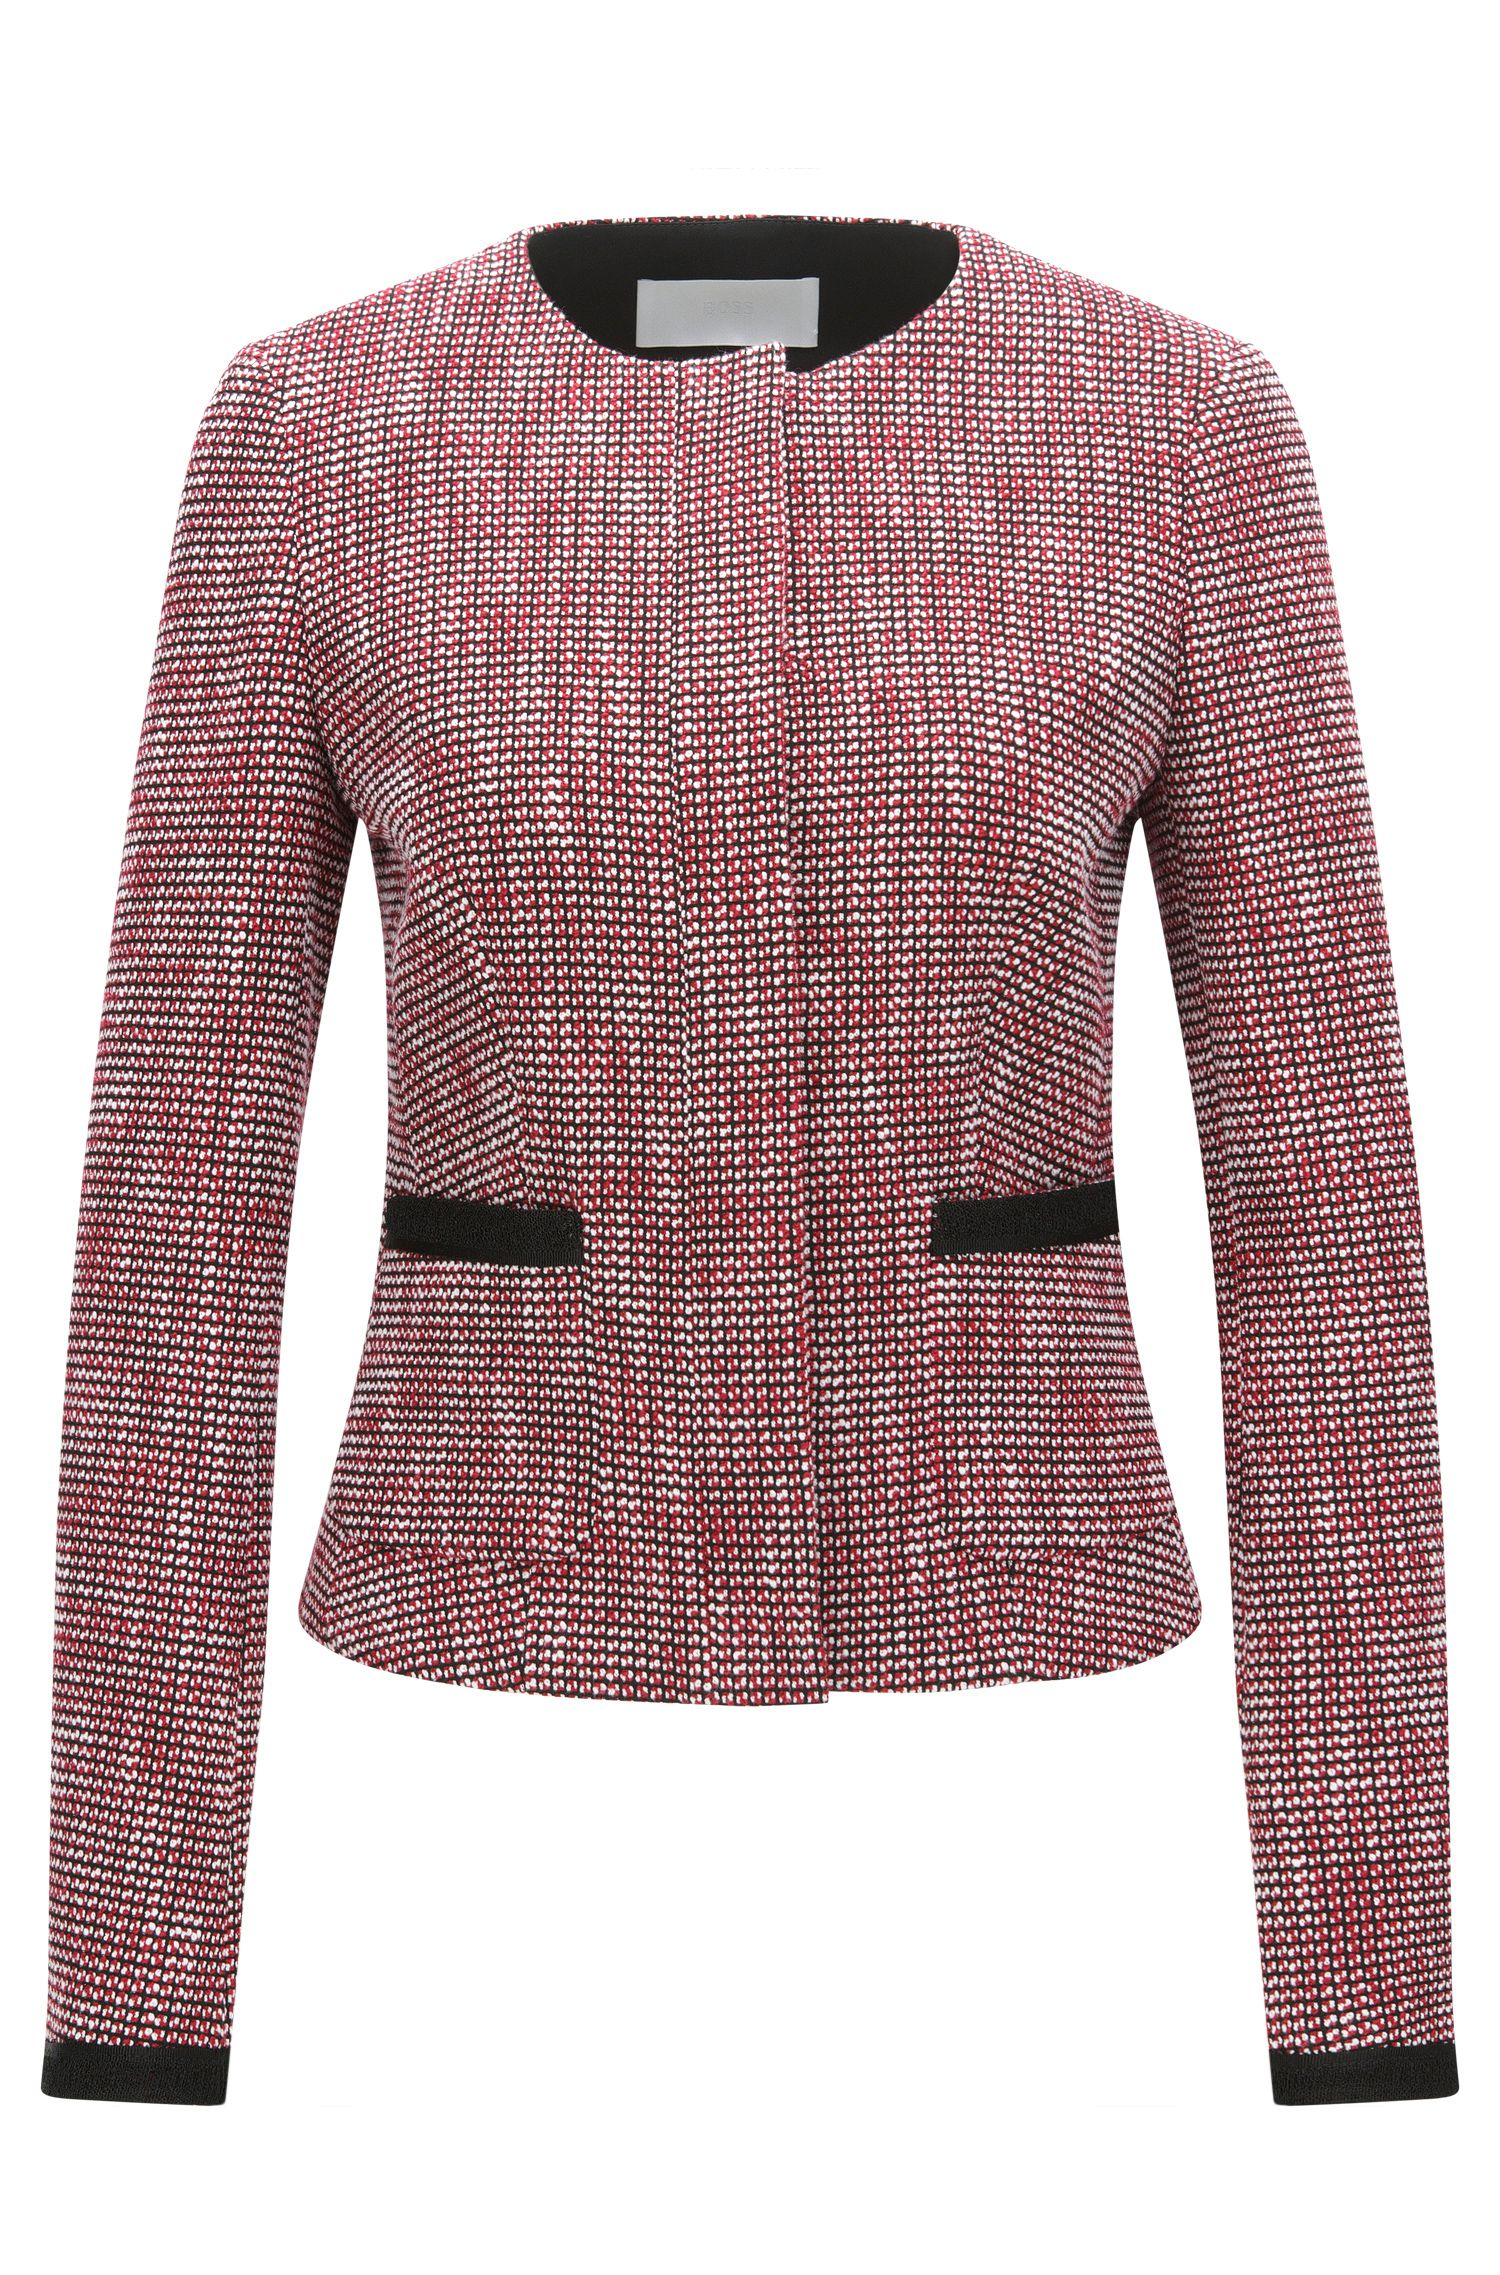 Regular-fit tailored jacket in multi-coloured jacquard